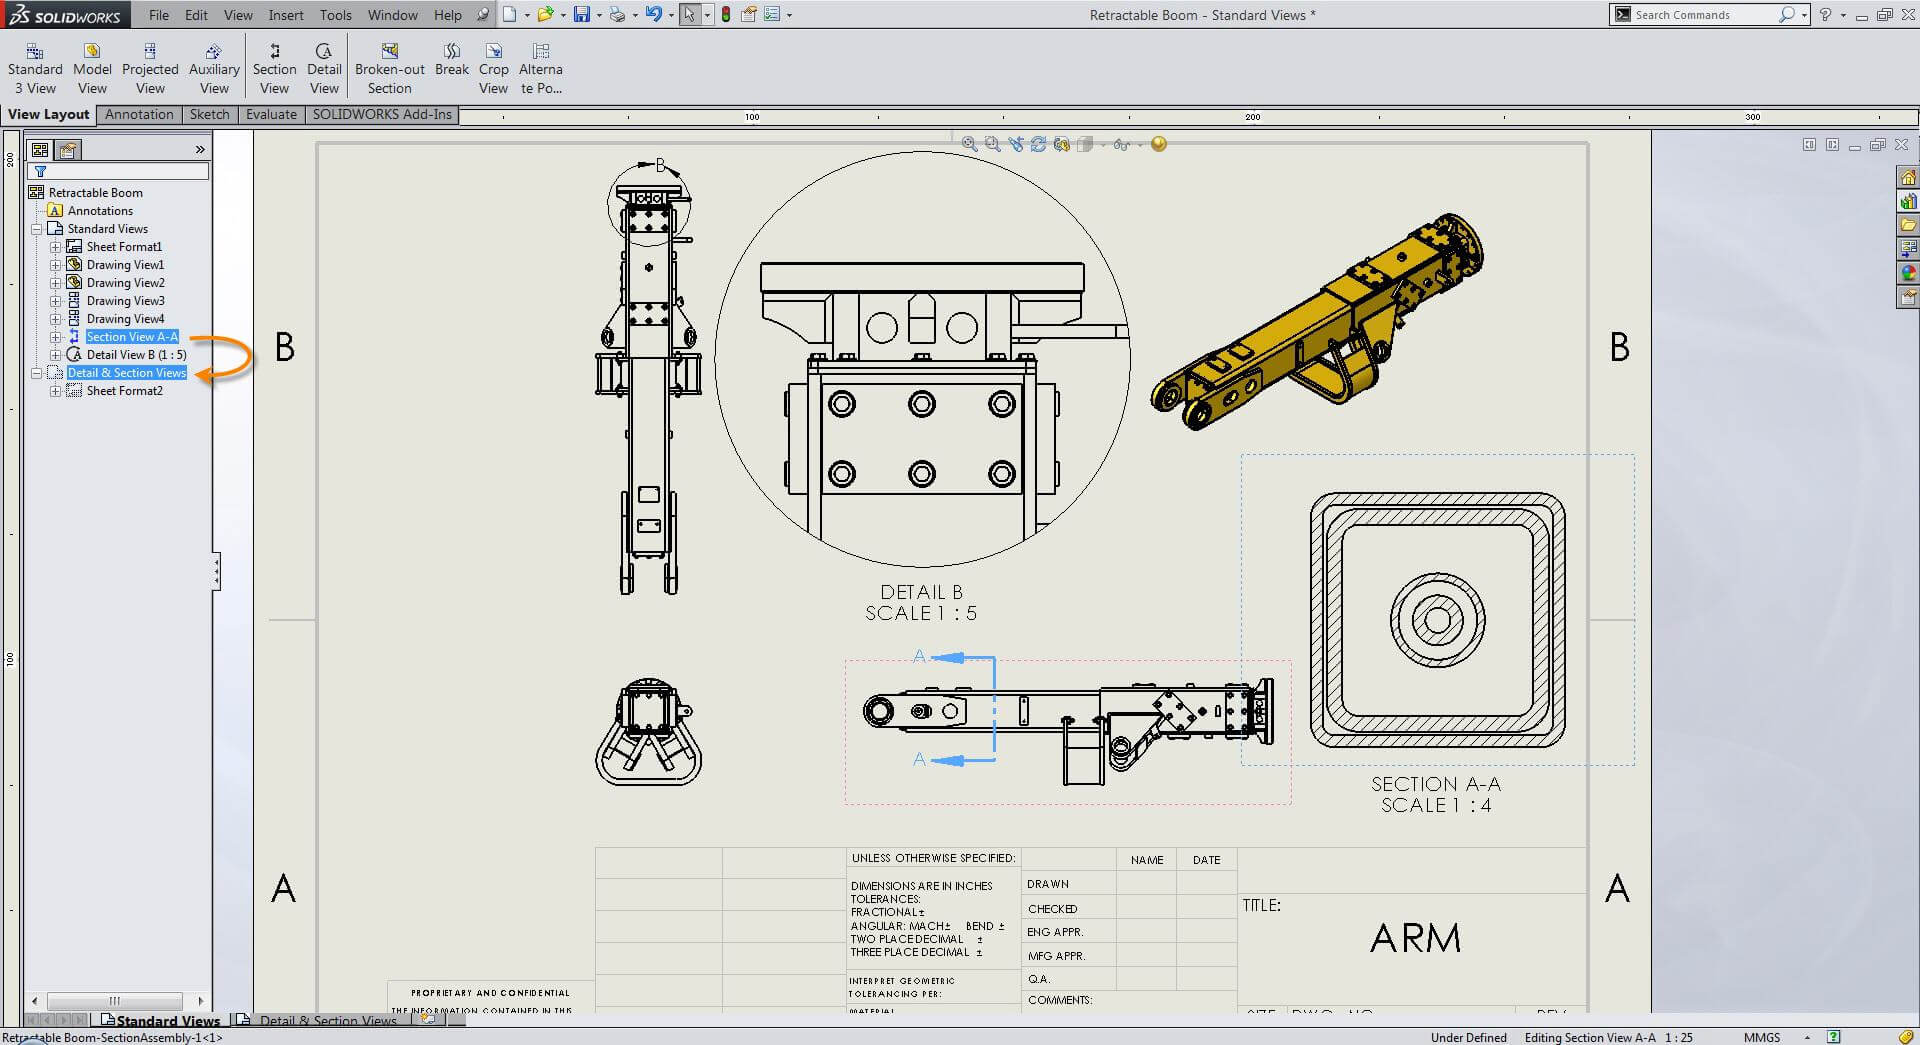 Find Parent View Of A Solidworks Section Or Detail View